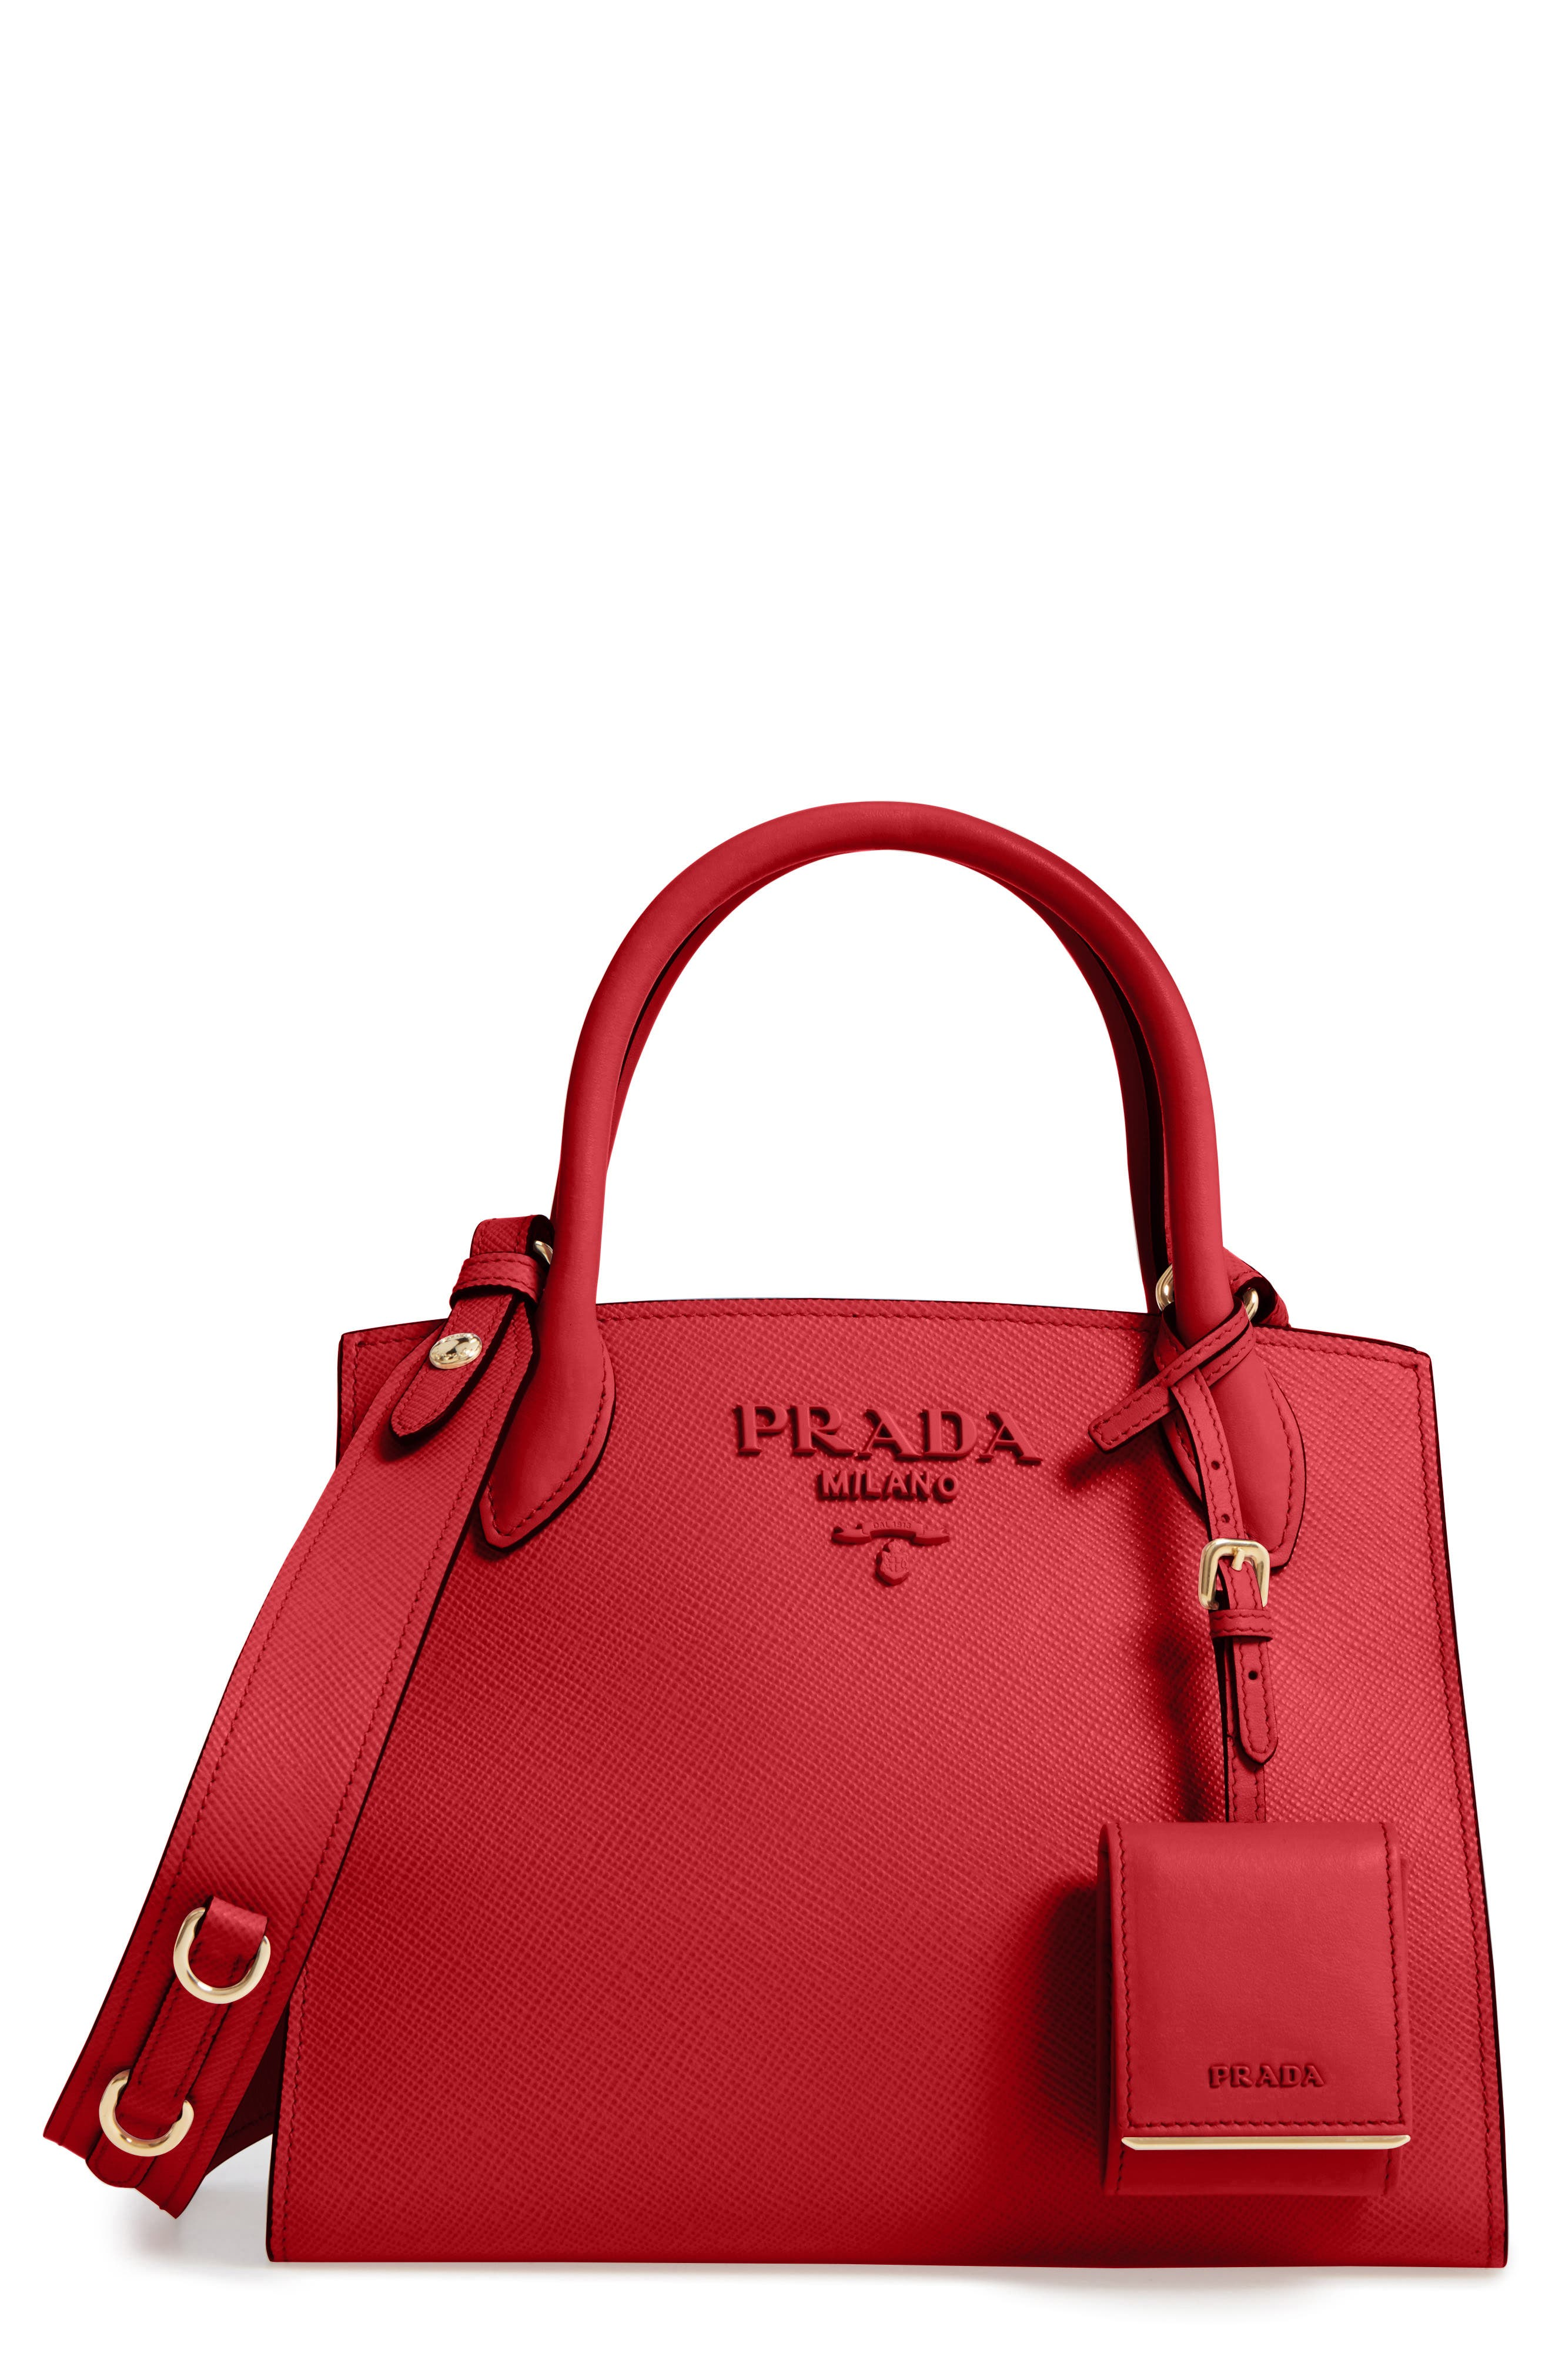 The perfect red bag